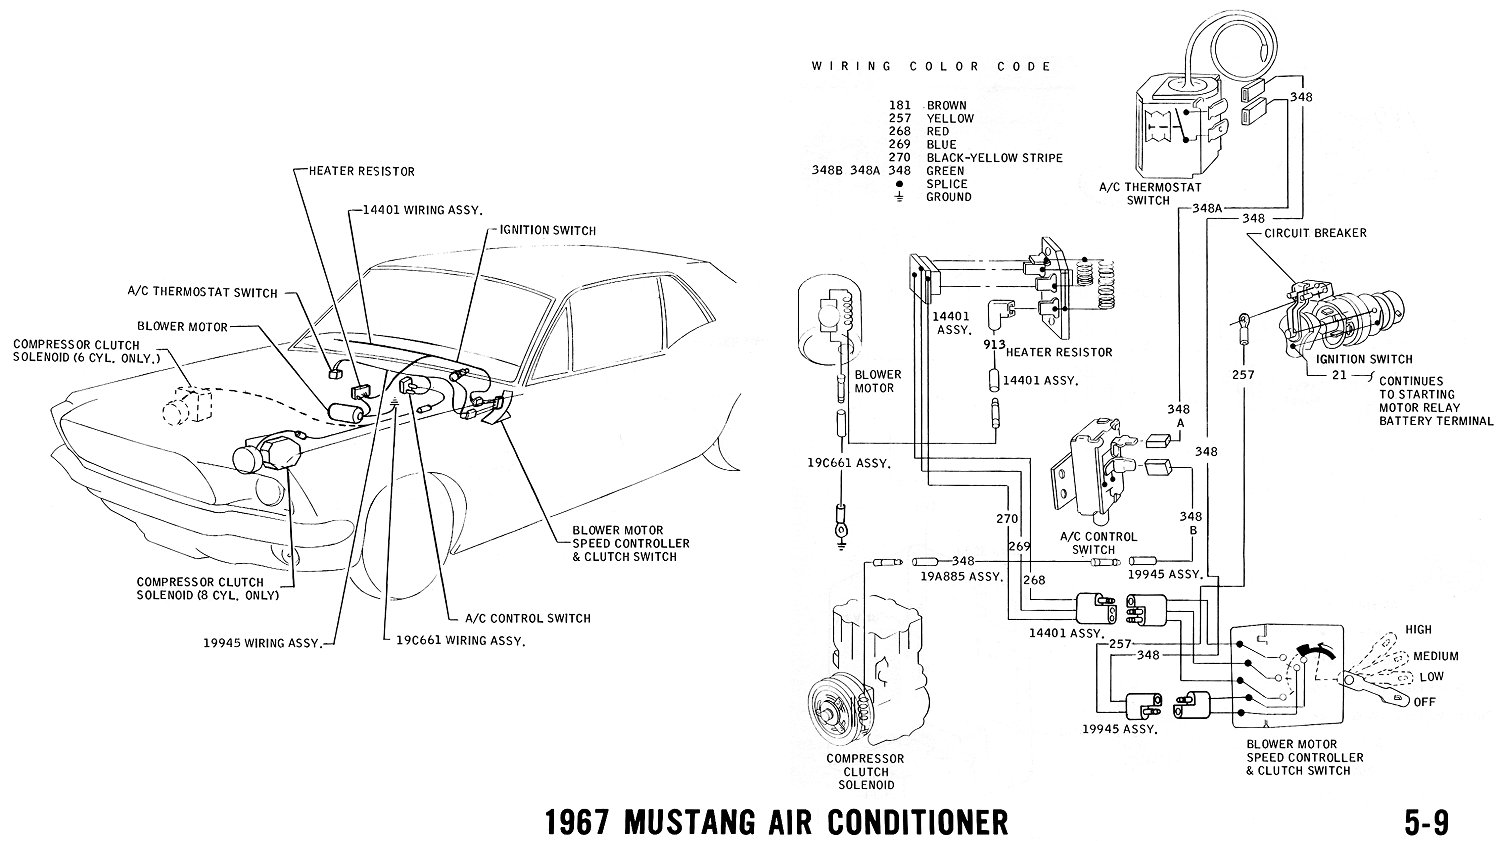 67ac 1967 mustang wiring and vacuum diagrams average joe restoration 2007 Mustang Wiring Diagram at soozxer.org